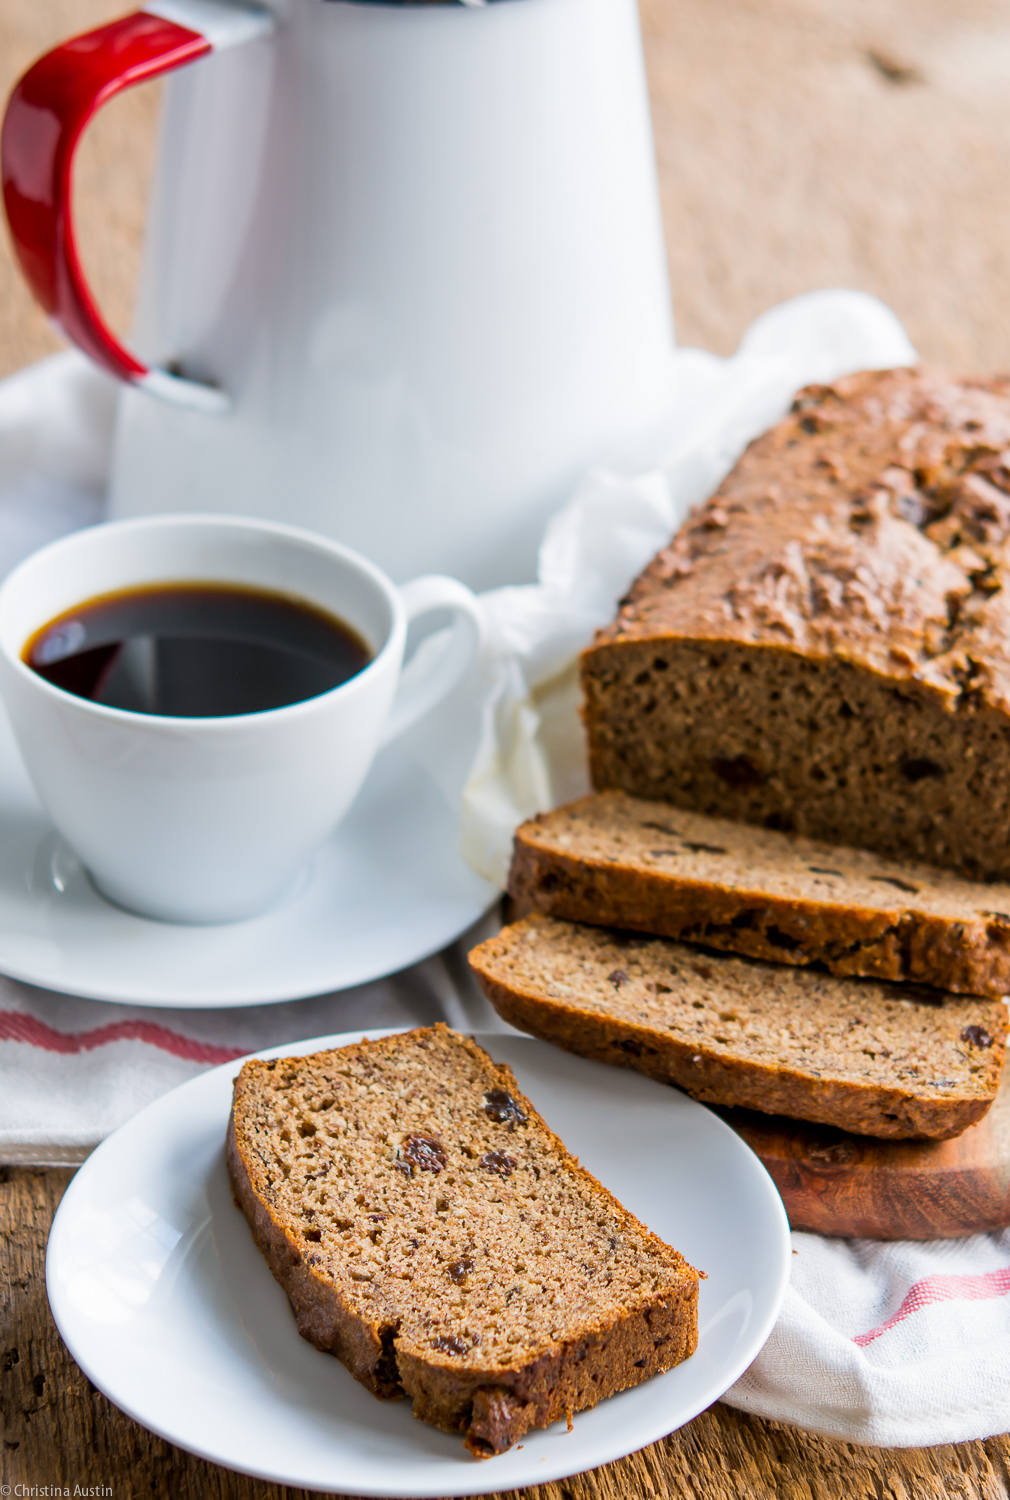 Banana Bread with Prune and Milled Flaxseed